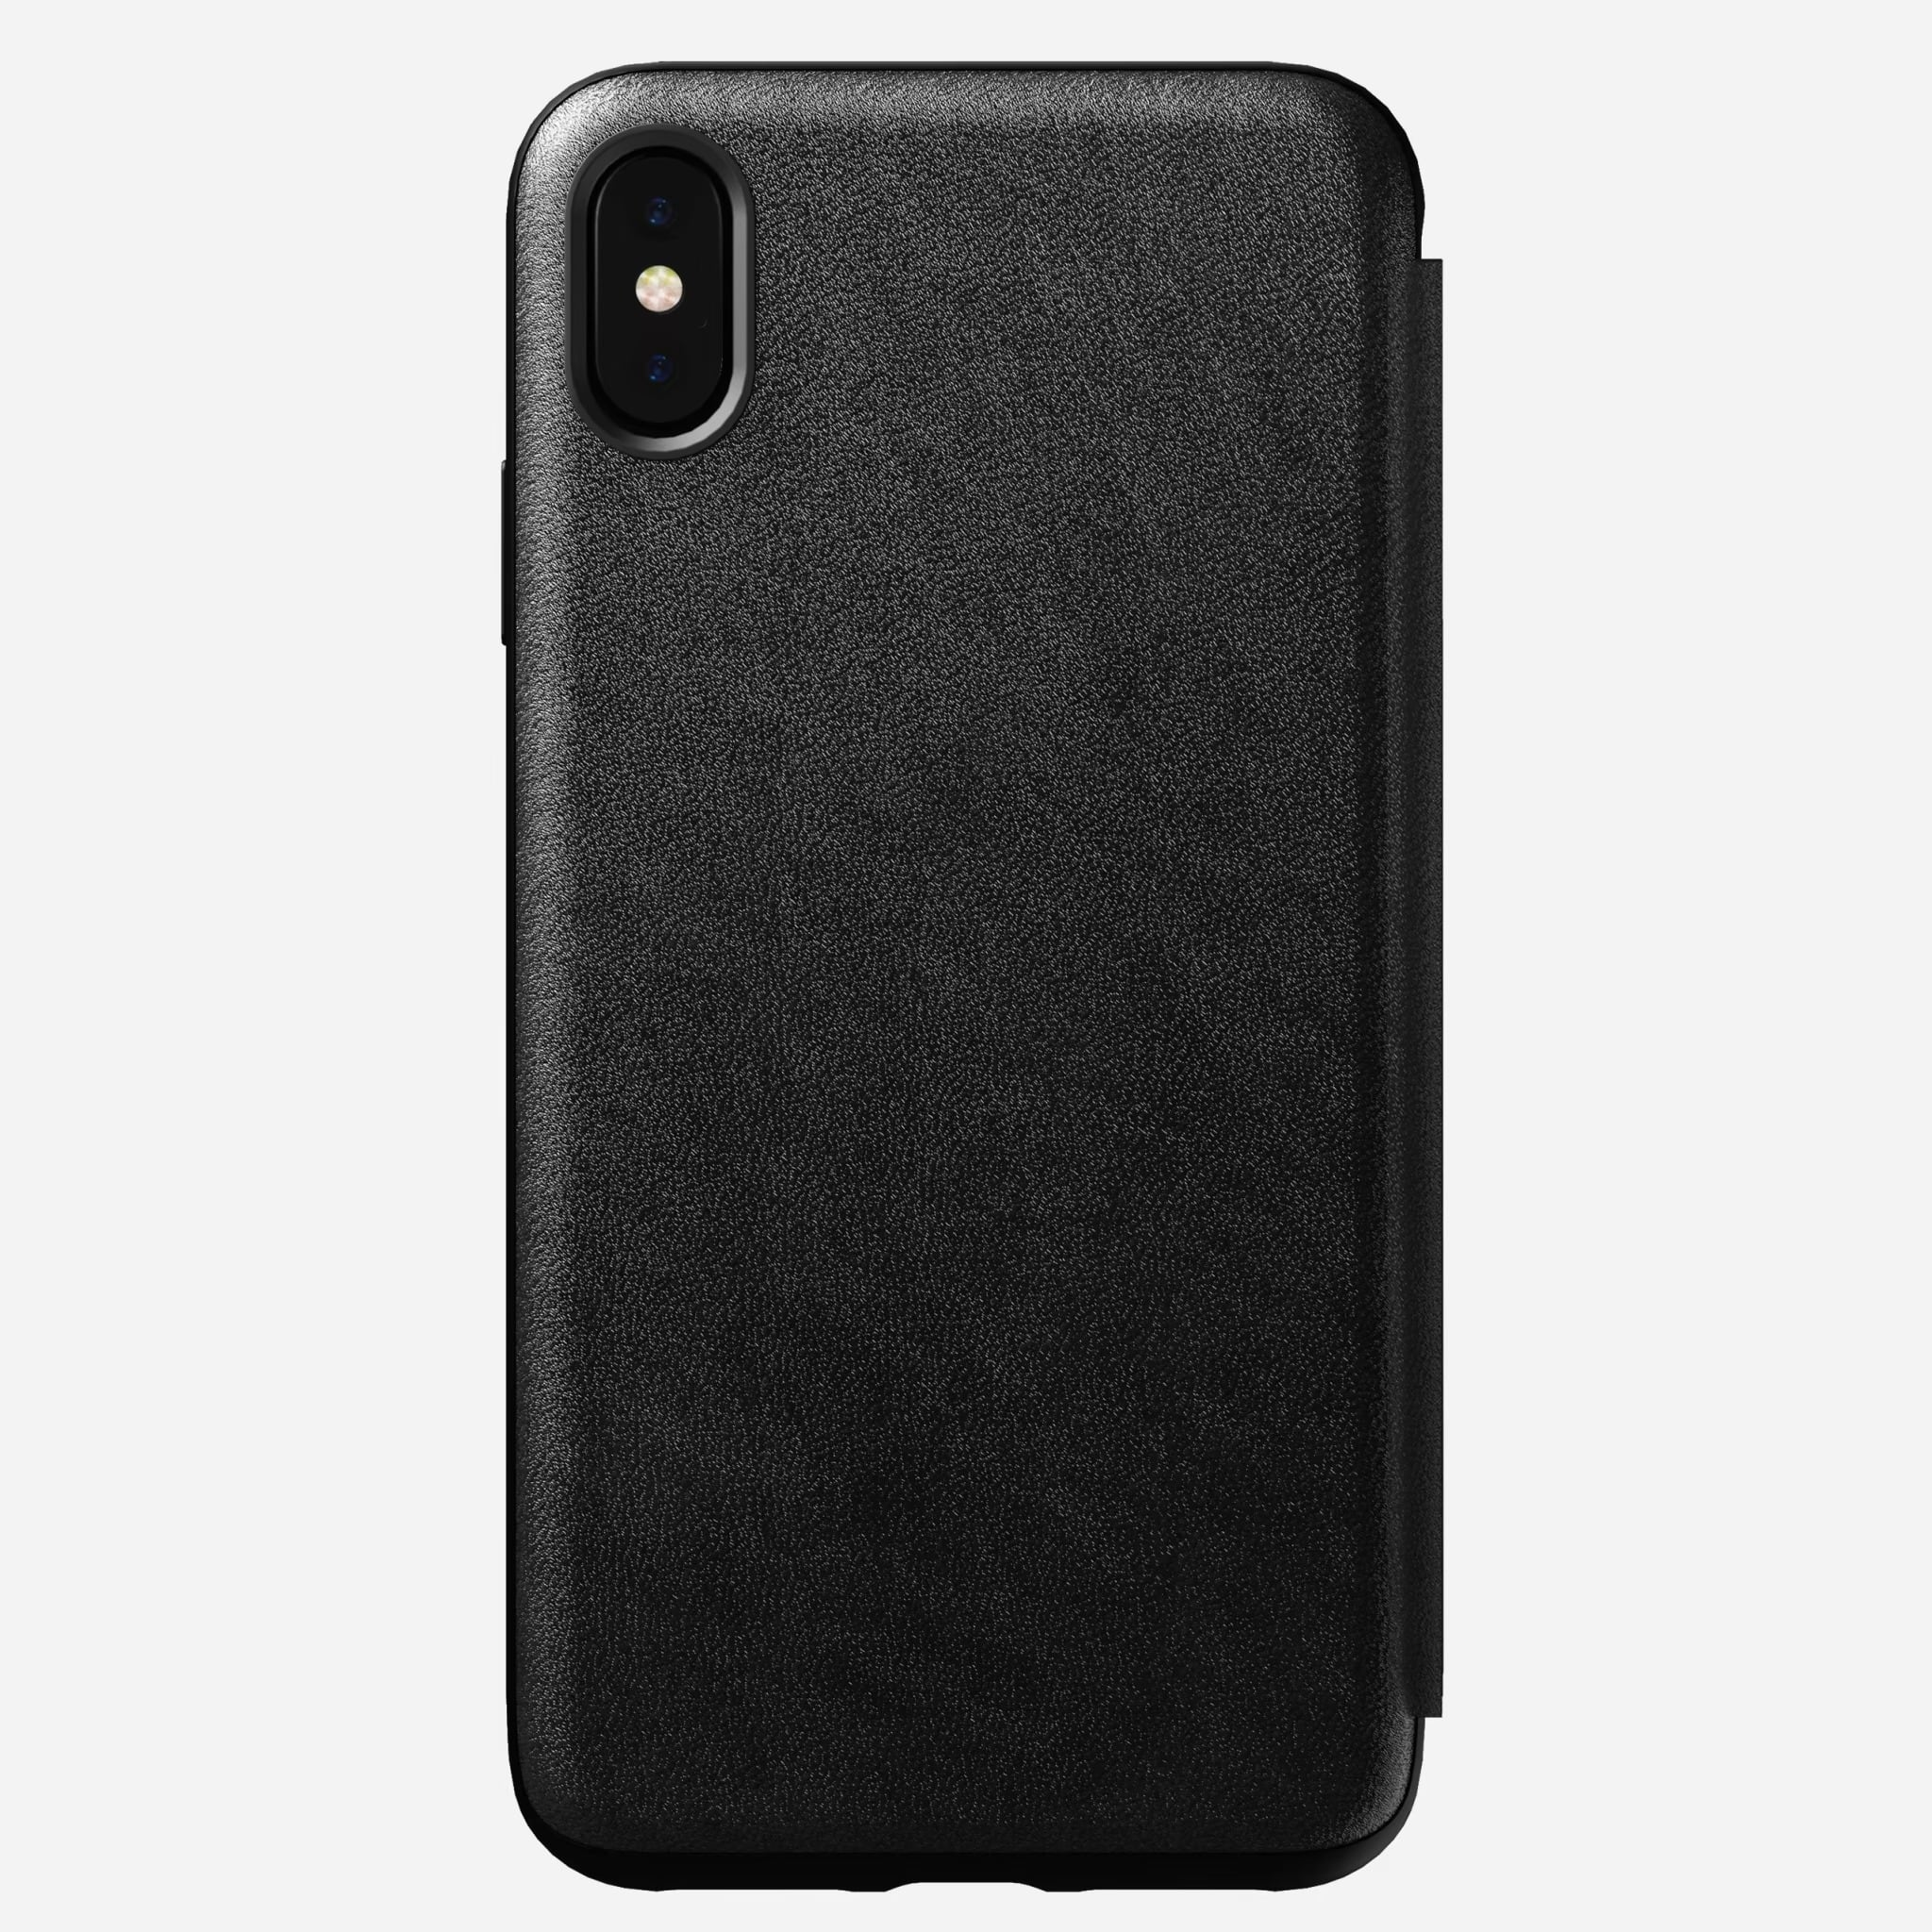 Outlet Sale   NOMAD® Cases for AirPods, iPhone Xs, Xr  - $14.95...